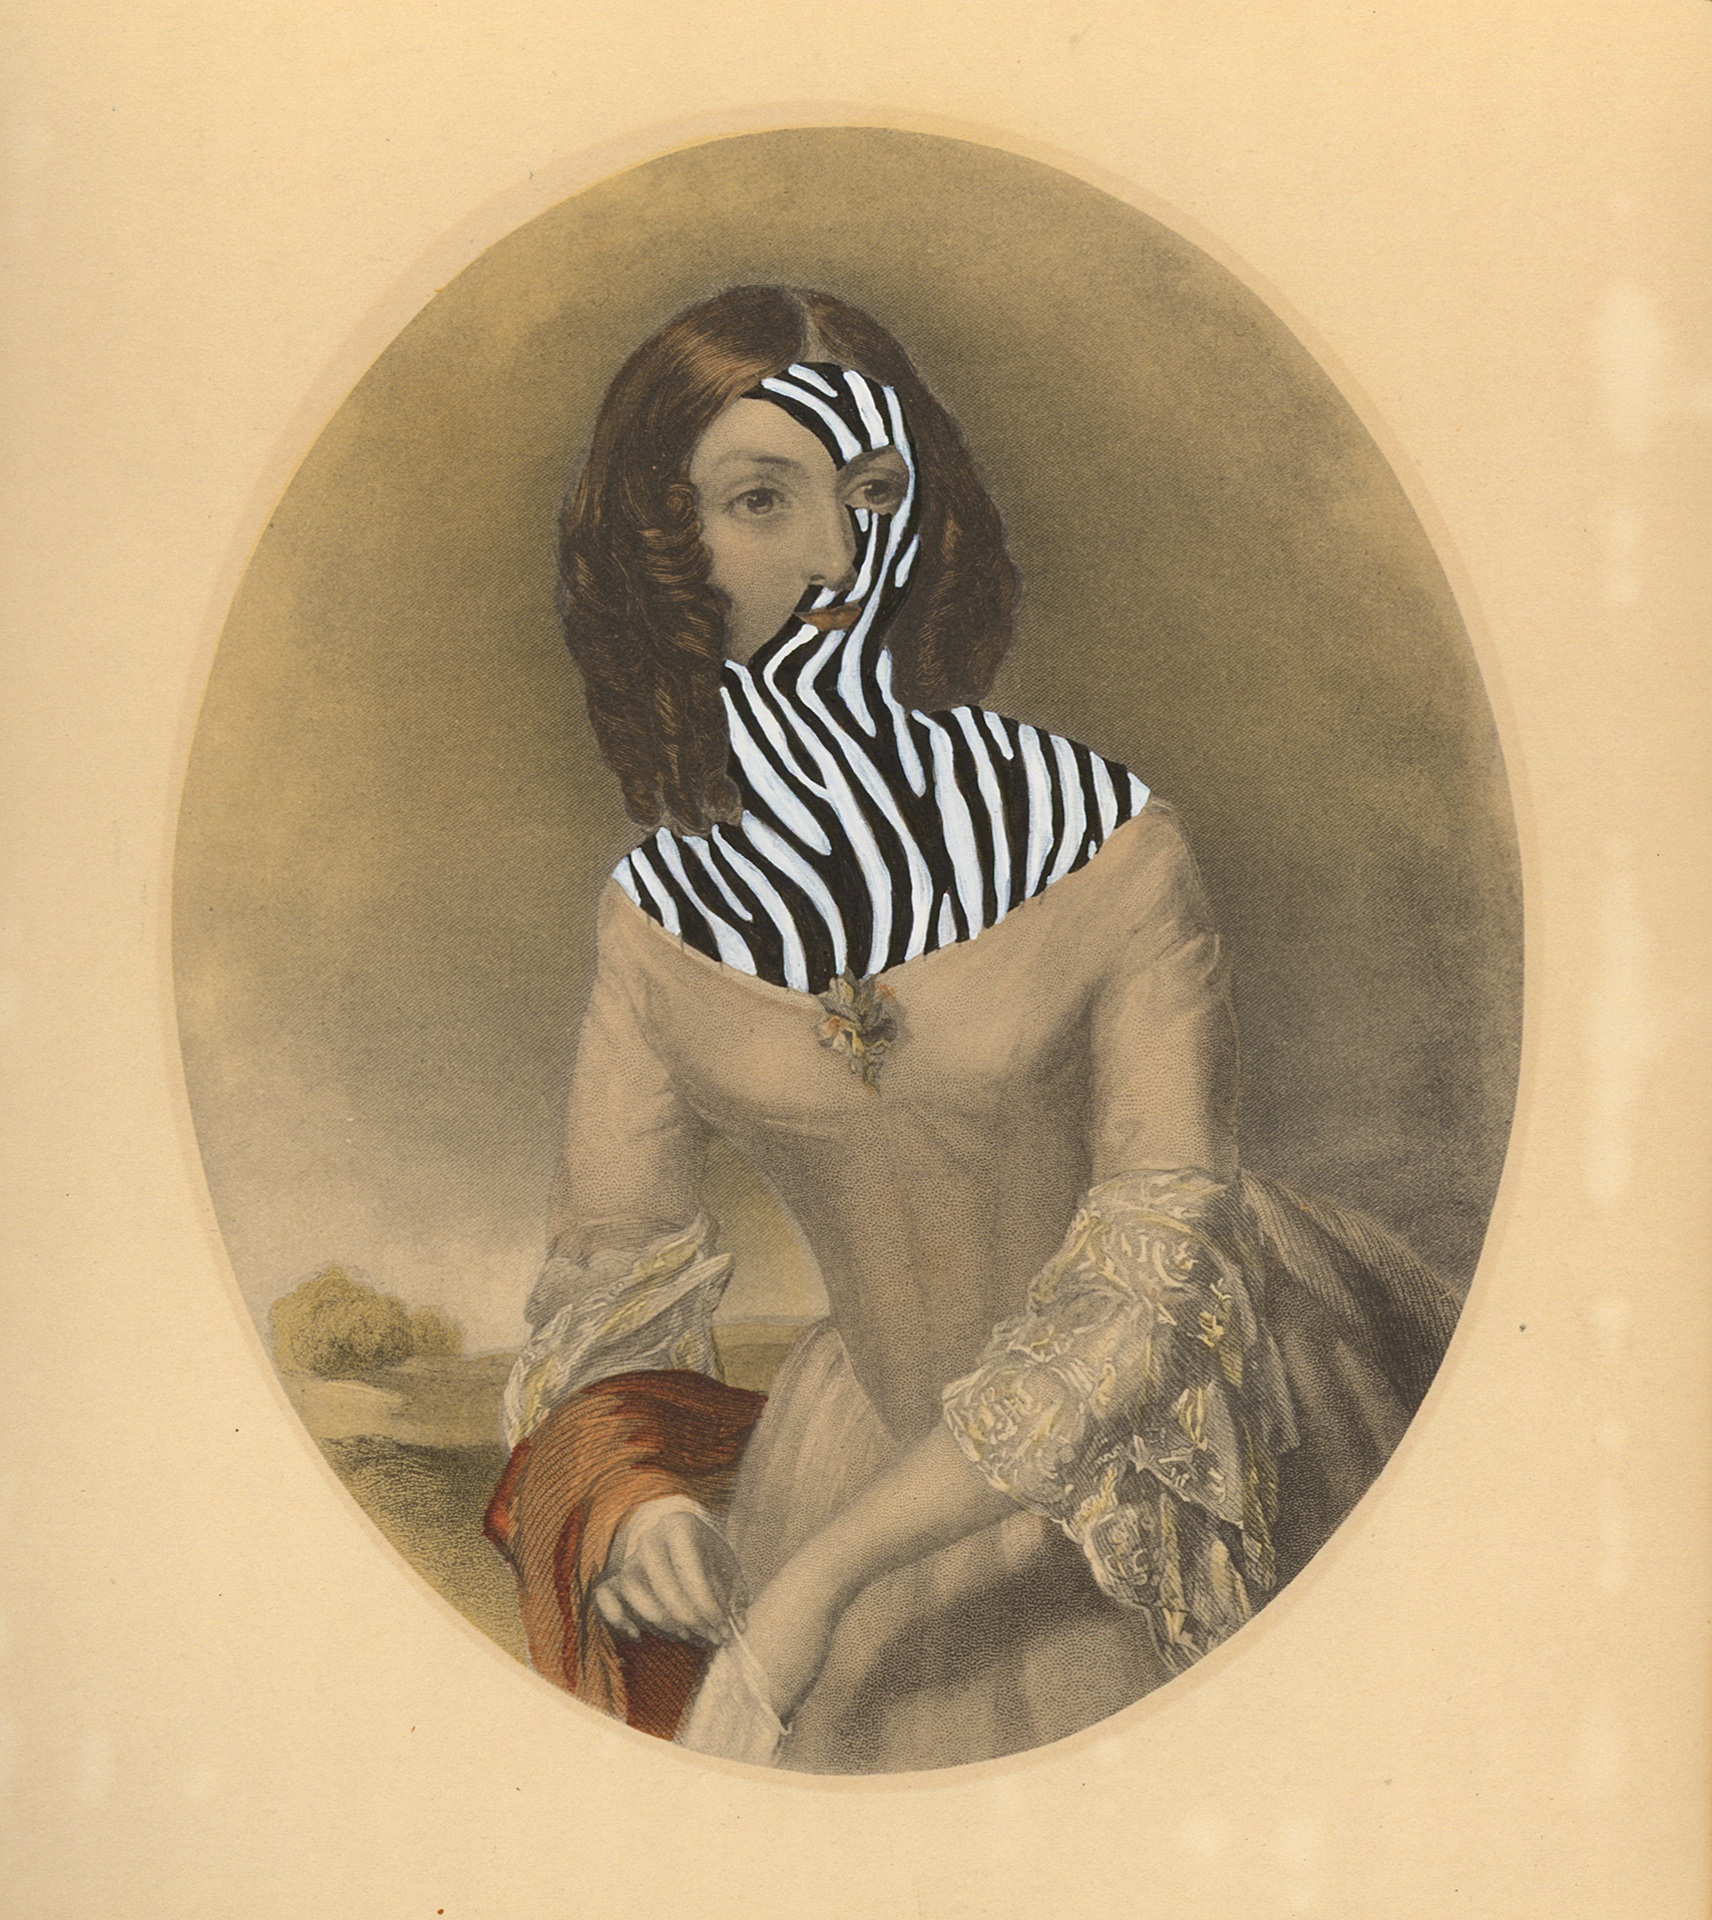 "Mrs.Calvin Hathaway 1840/2014 , gouache and ink on vintage offset litho, 7"" x 6"", 2014"